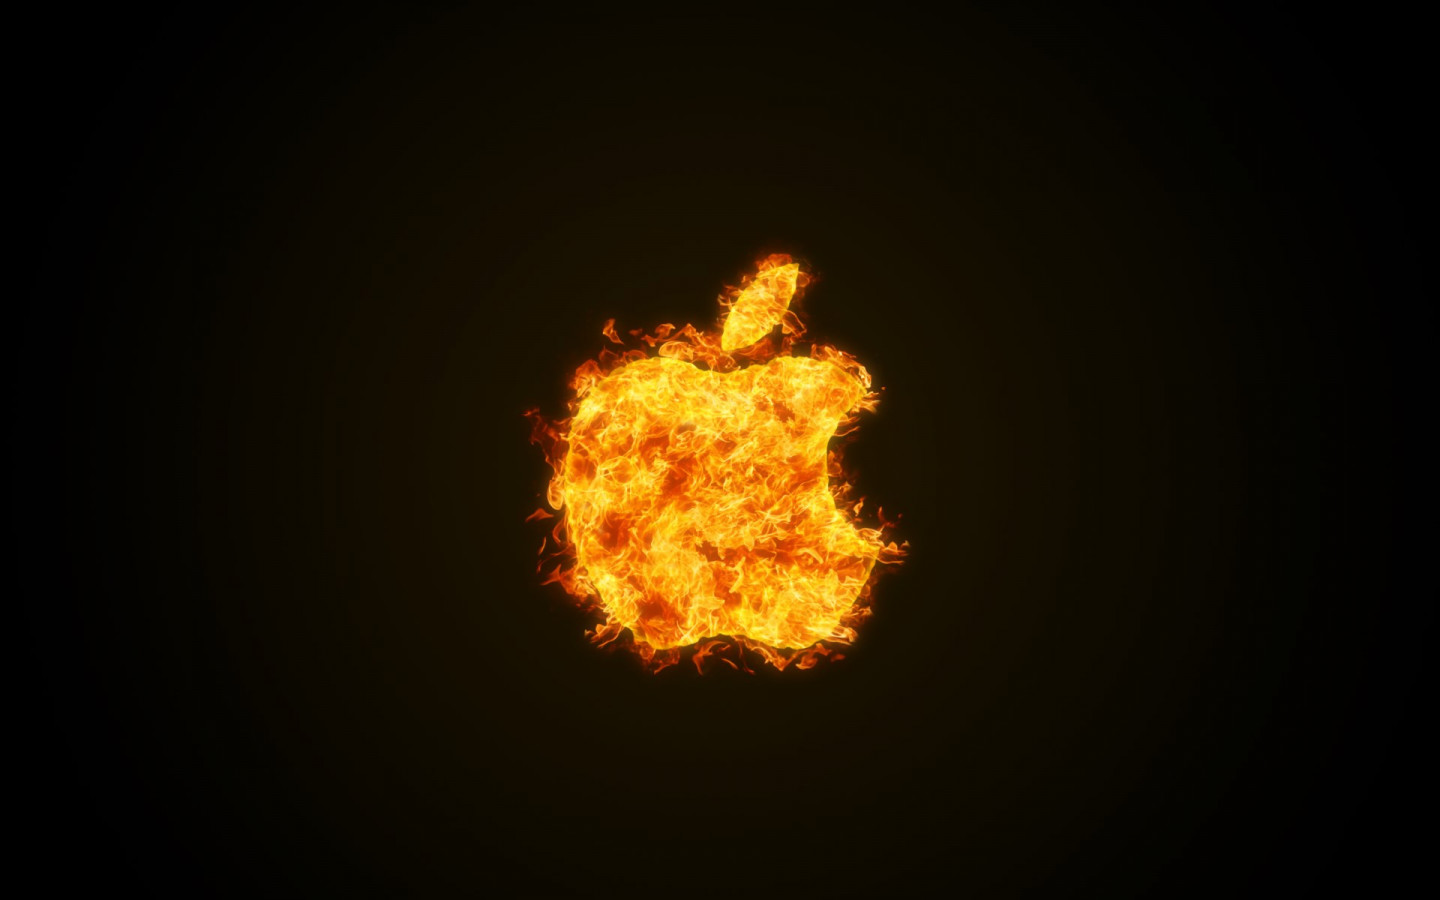 Apple fire wallpaper 1440x900